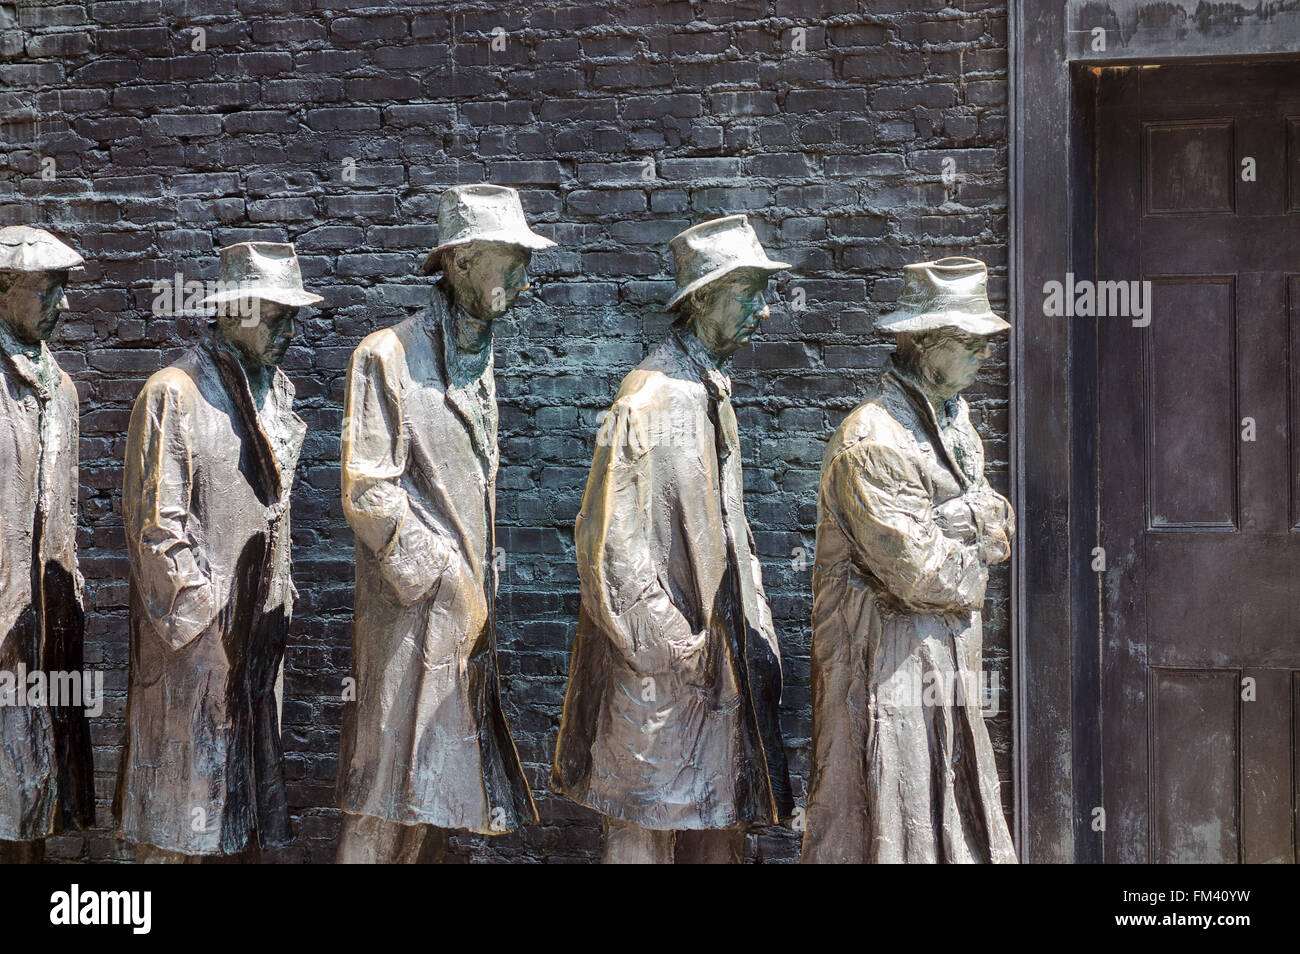 Bread Line At Roosevelt Memorial - Stock Image